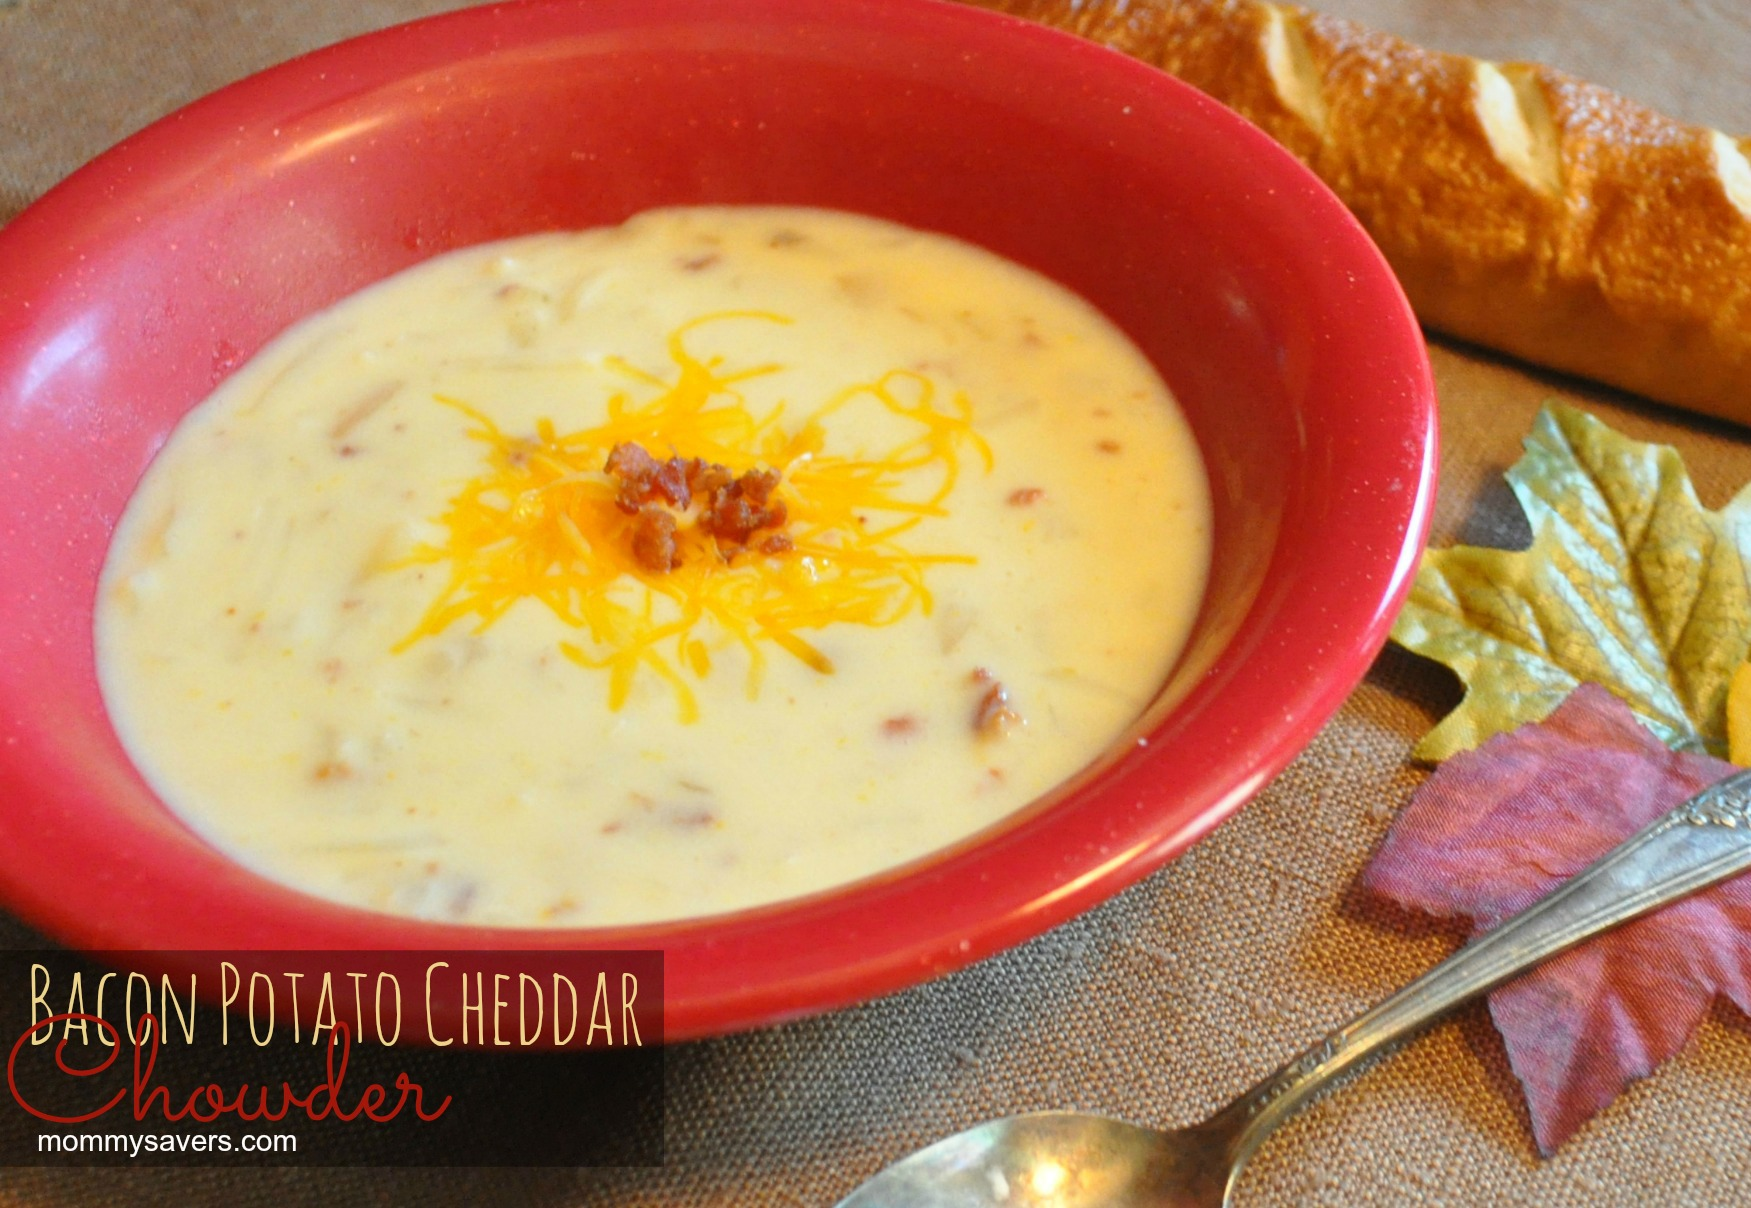 Bacon Potato Cheddar Chowder - EASY! | Mommysavers.com